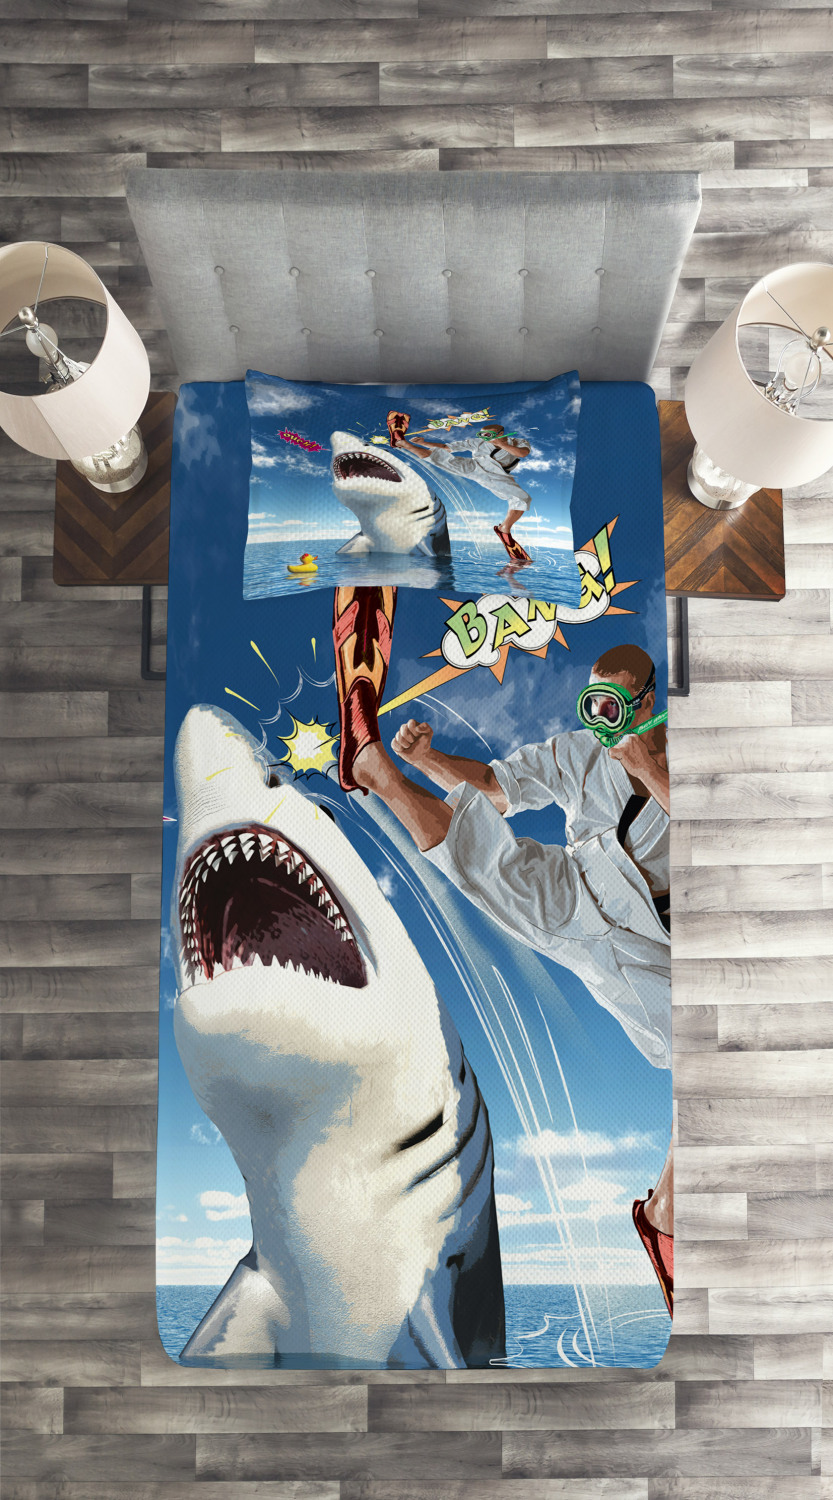 Sealife 10x12 FT Photo Backdrops,Unusual Marine Navy Life Animals Fish Sharks with Karate Kid and Comics Balloon Art Background for Party Home Decor Outdoorsy Theme Vinyl Shoot Props Multicolor